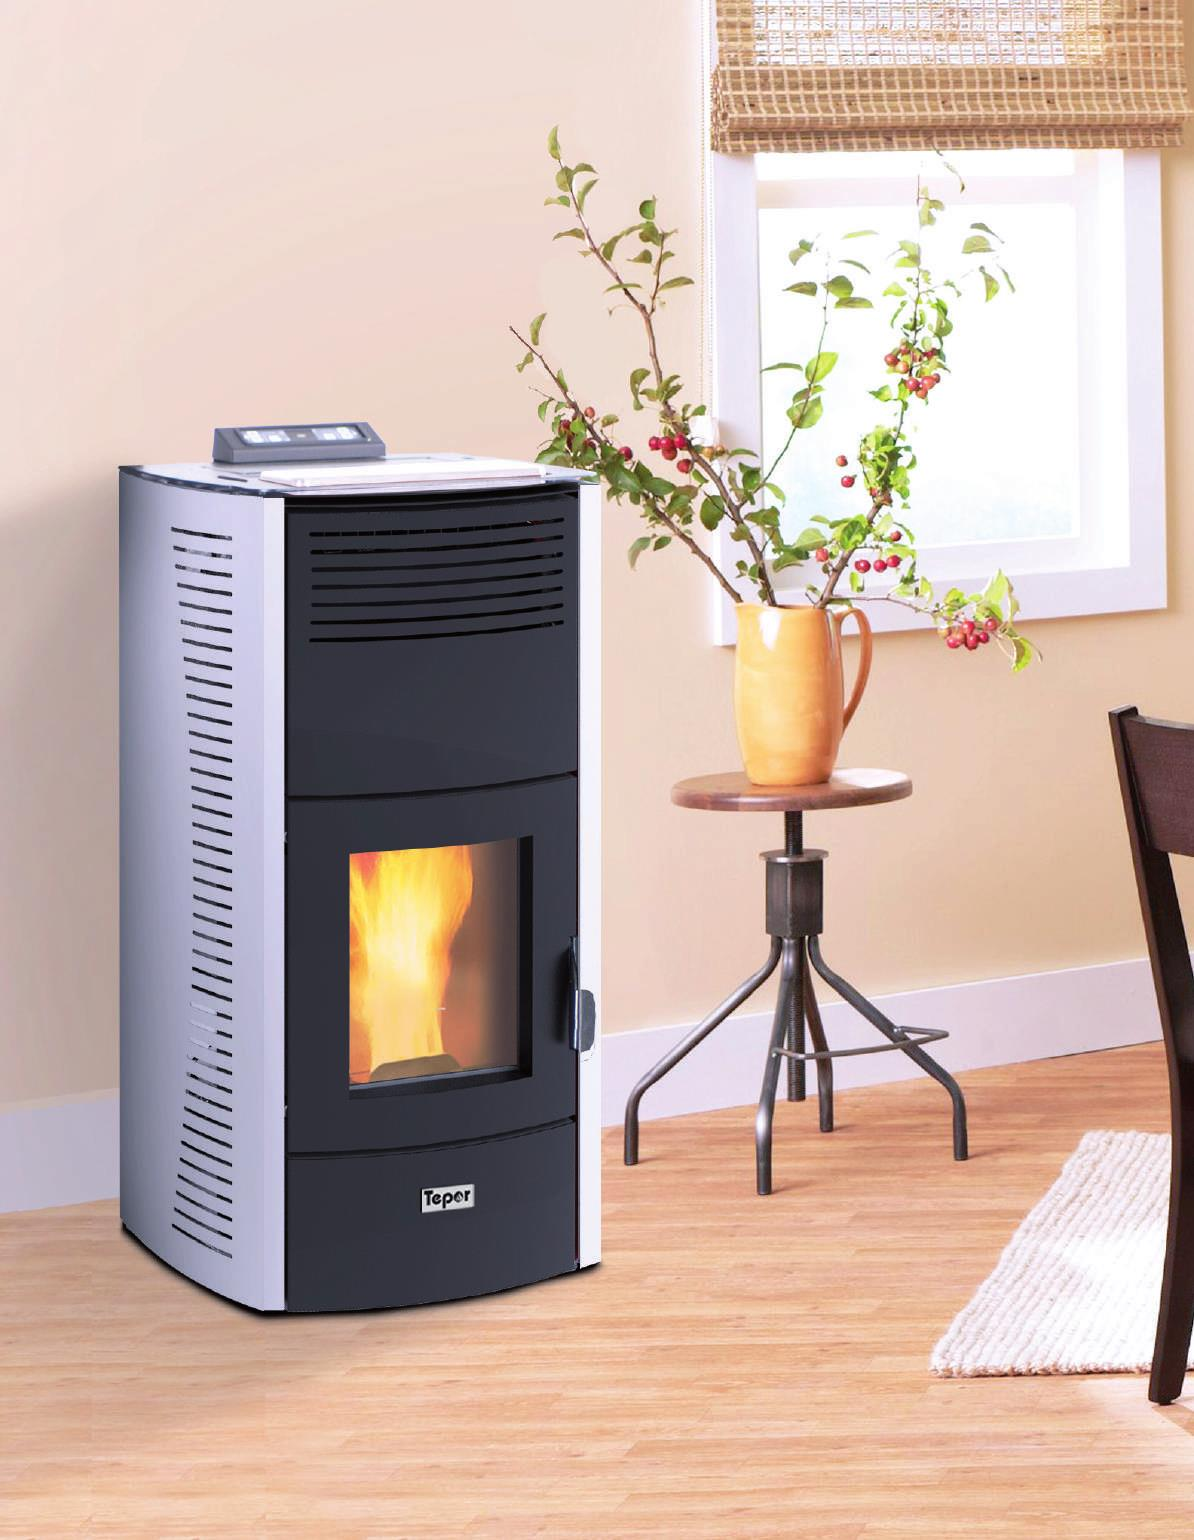 Hydro stoves